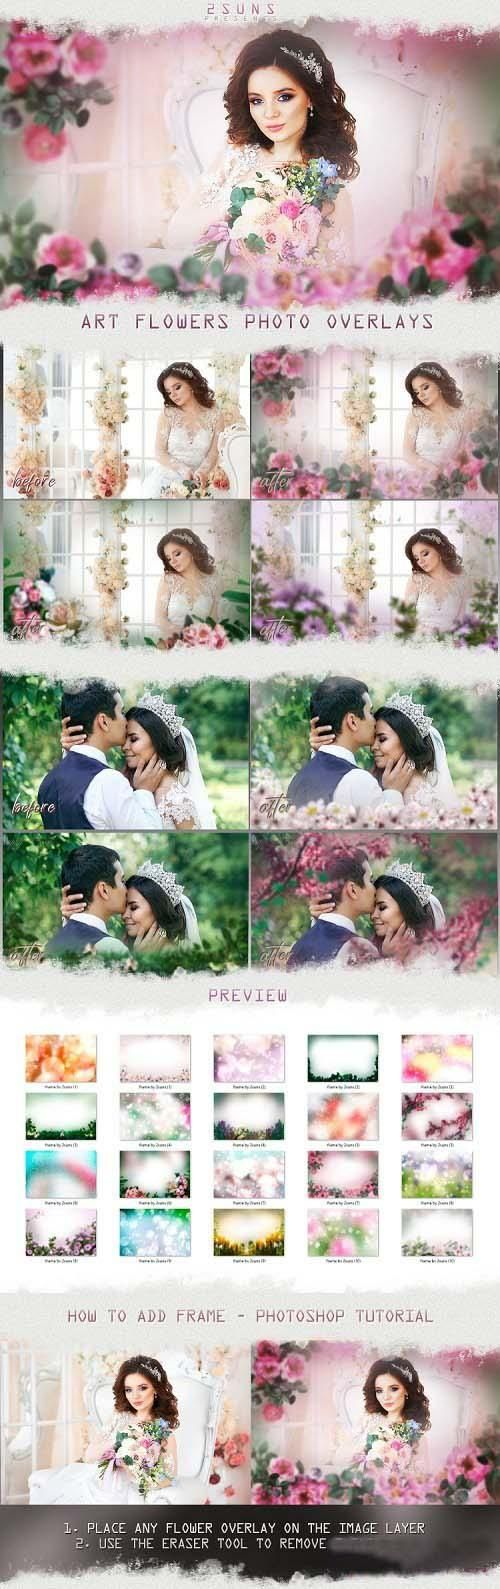 Art flowers overlays frame templates wedding - 265083